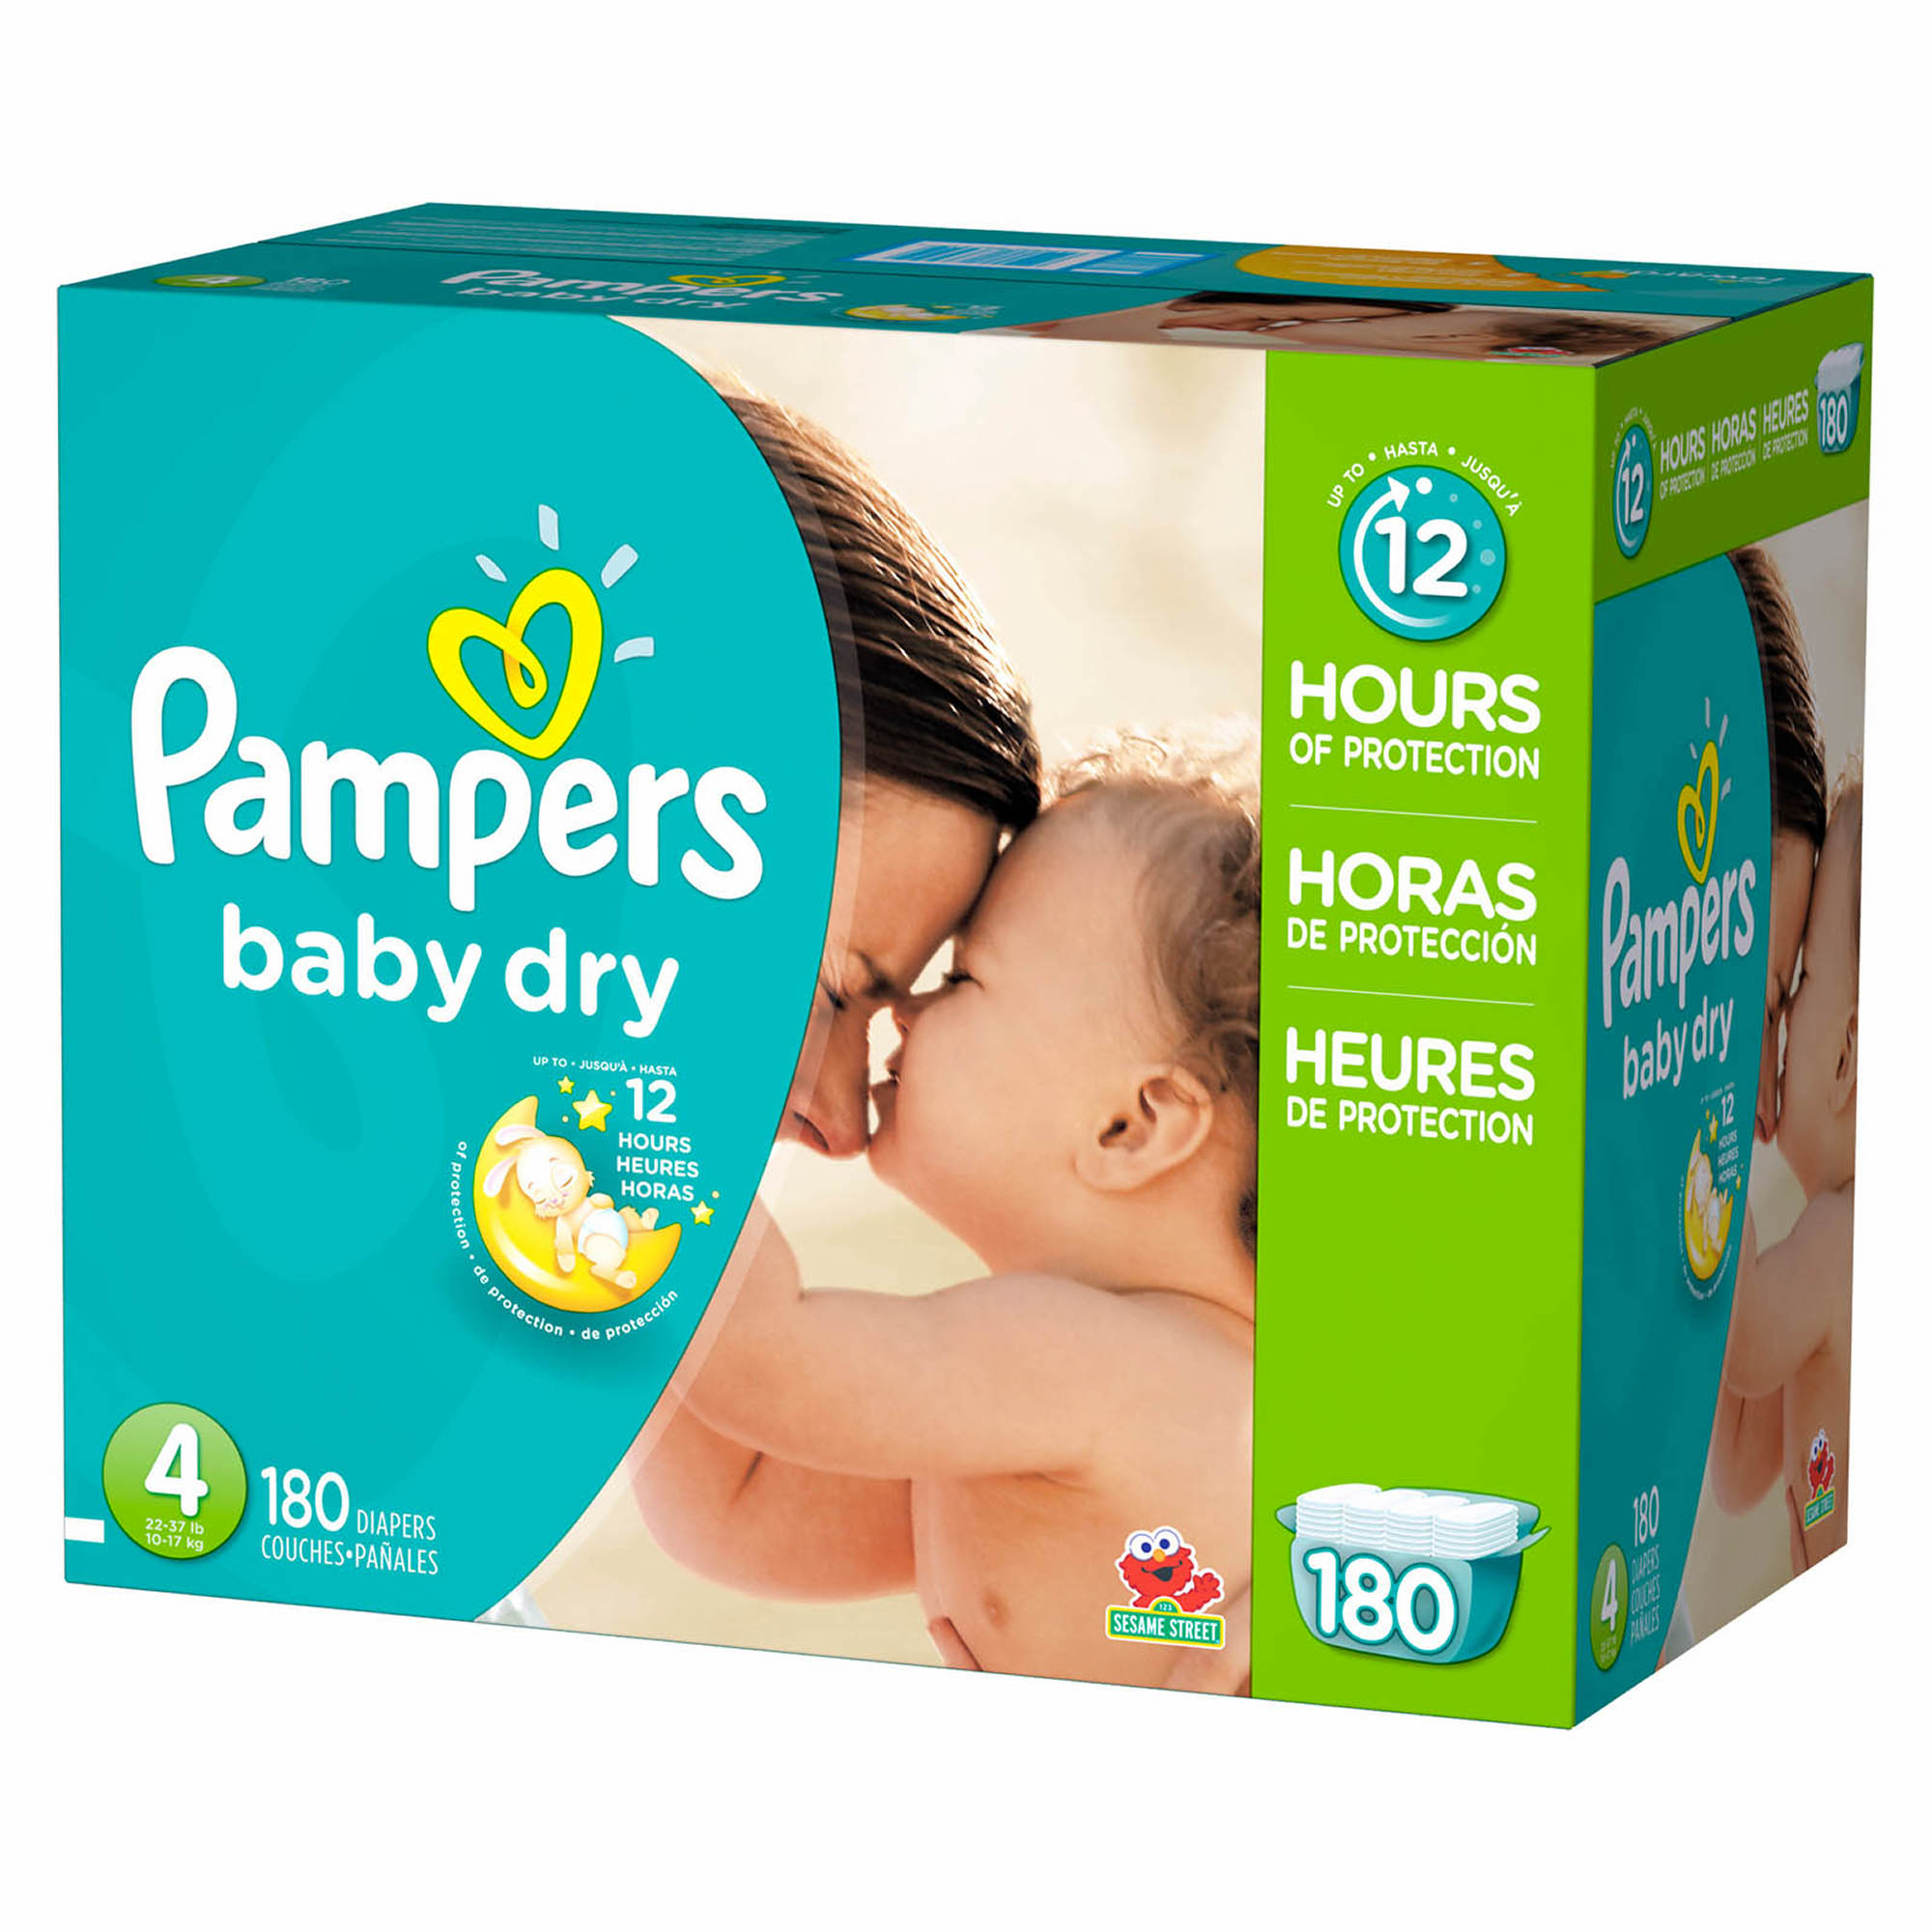 With Pampers® Baby Dry diapers, your baby can get up to 12 hours of overnight protection, which helps them get the uninterrupted sleep they need for a great morning. Plus, Baby Dry has 3 layers of absorbency versus only 2 in an ordinary diaper.